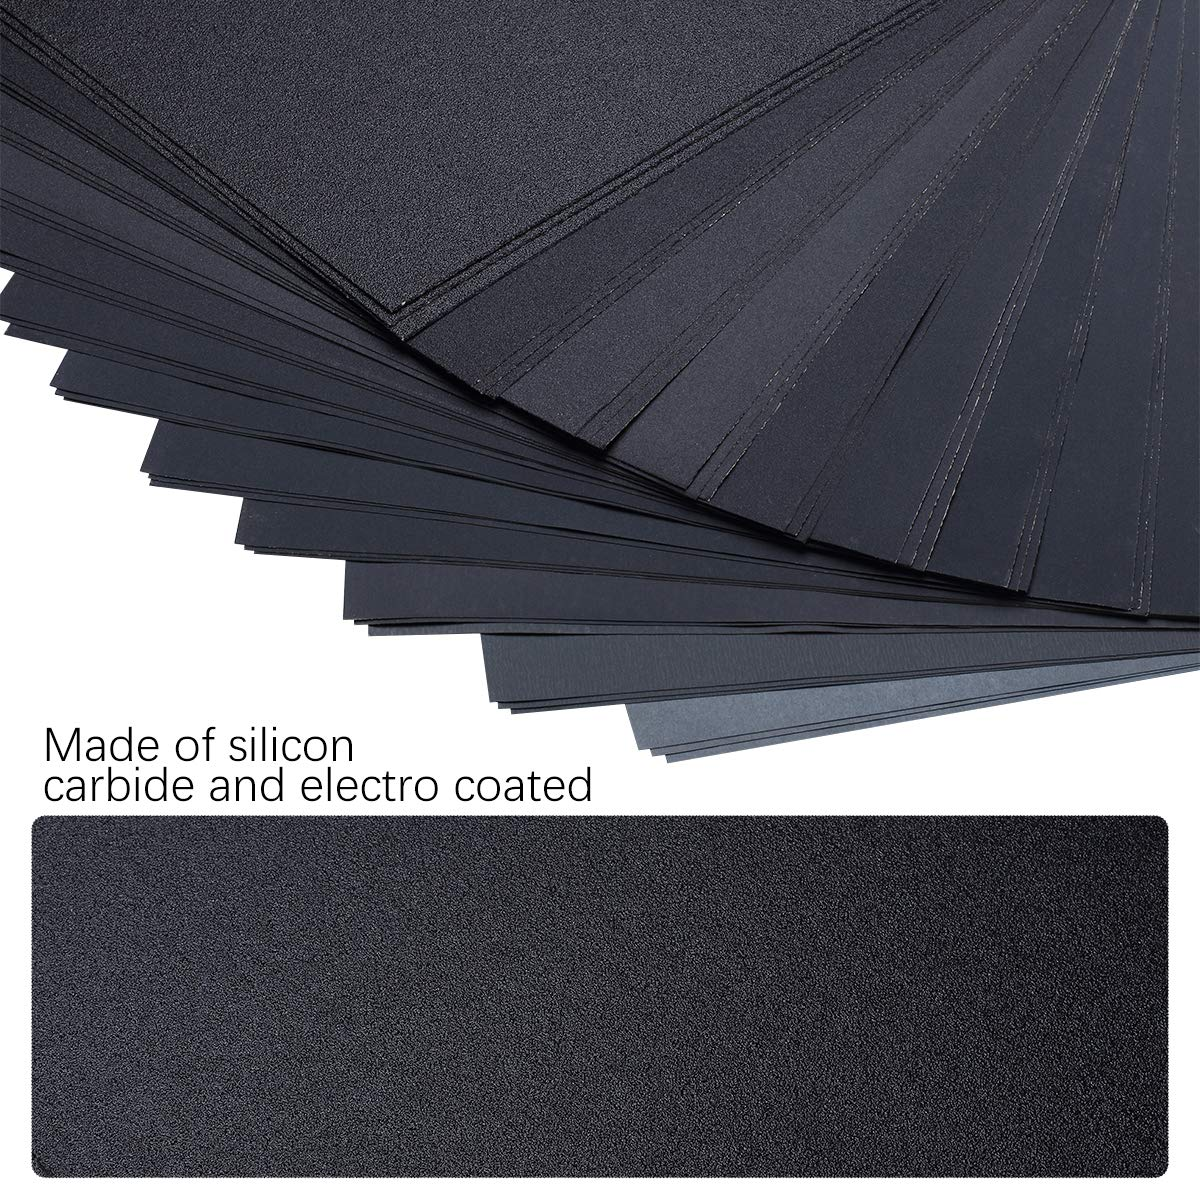 Dry or Wet Sanding Metal Sanding and Automotive Polishing 120 To 3000 Assorted Grit Sandpaper for Wood Furniture Finishing 36-Sheet with Sandpaper Holder 9 x 3.6 Inch